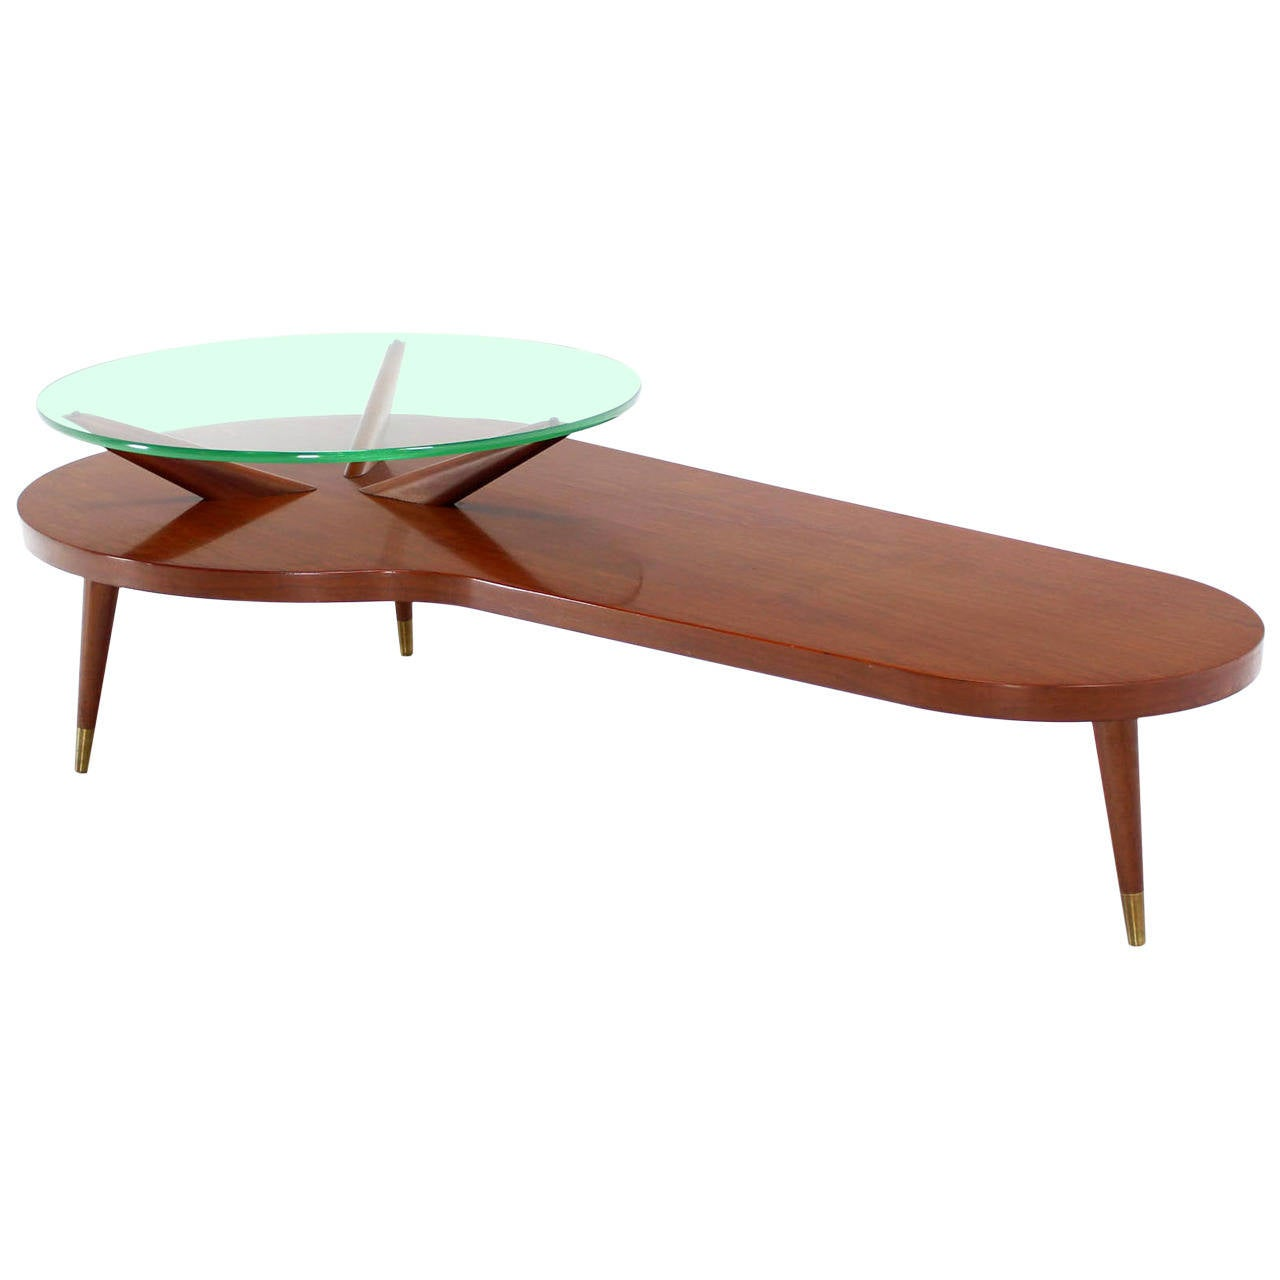 Round Glass Top Coffee Table Mid Century Modern Walnut Organic Kidney Shape Coffee Table Round Glass Top